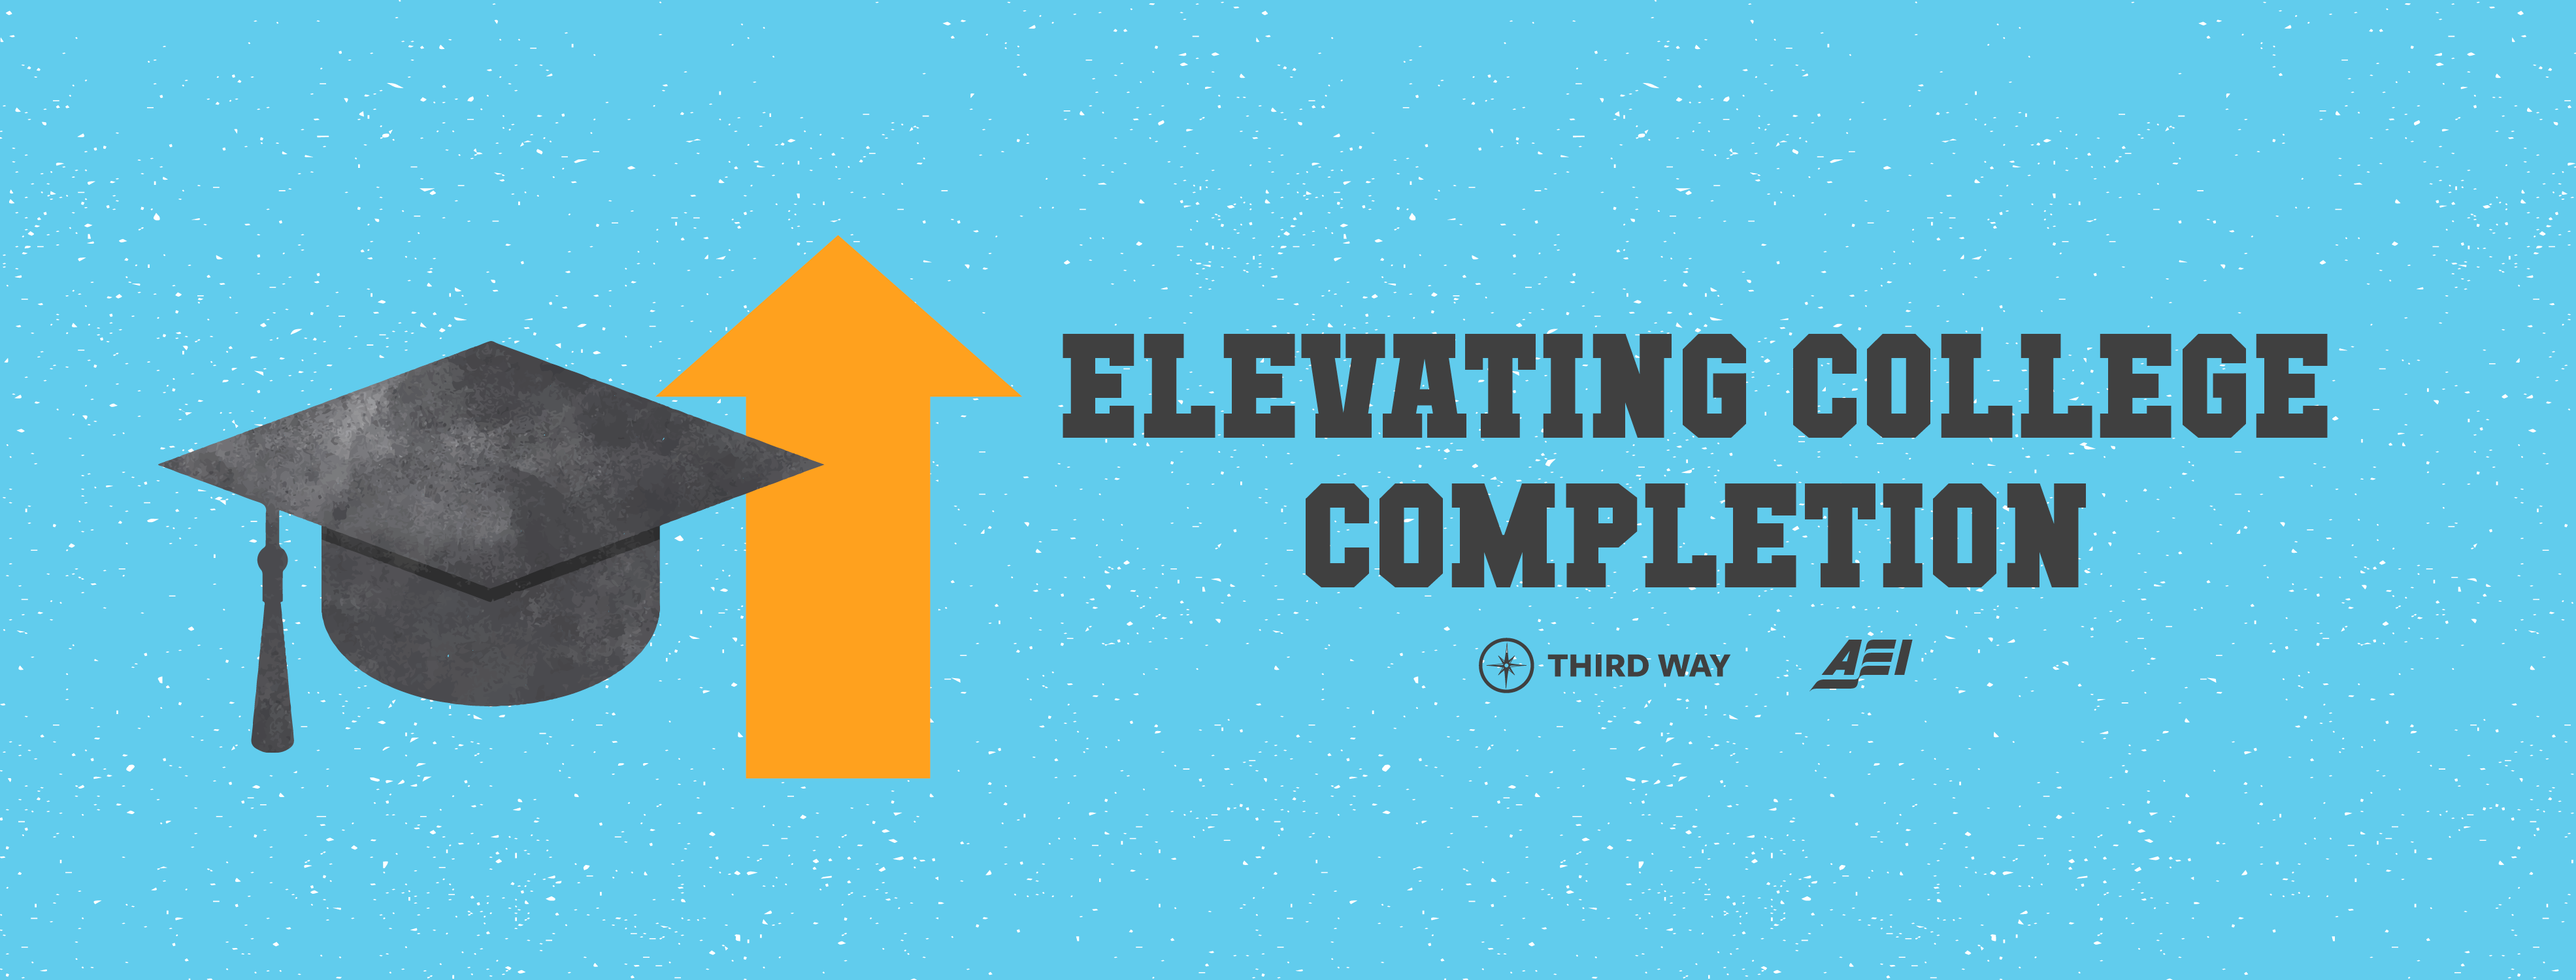 Elevating College Completion Series Header